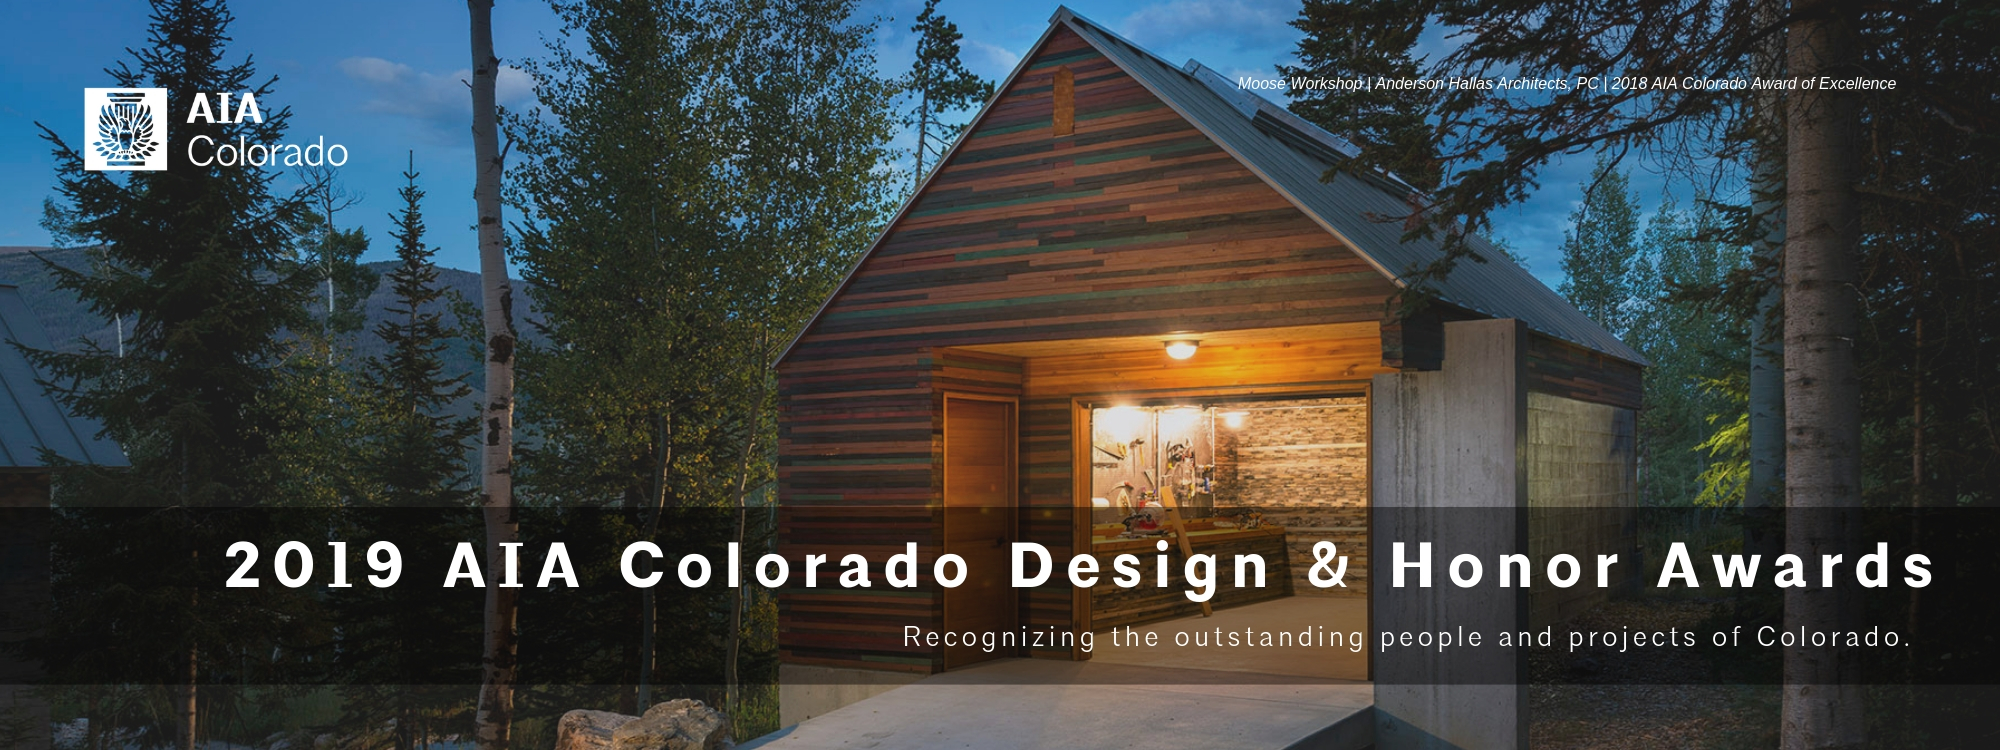 AIA Colorado 2019 Design and Honor Awards Celebration